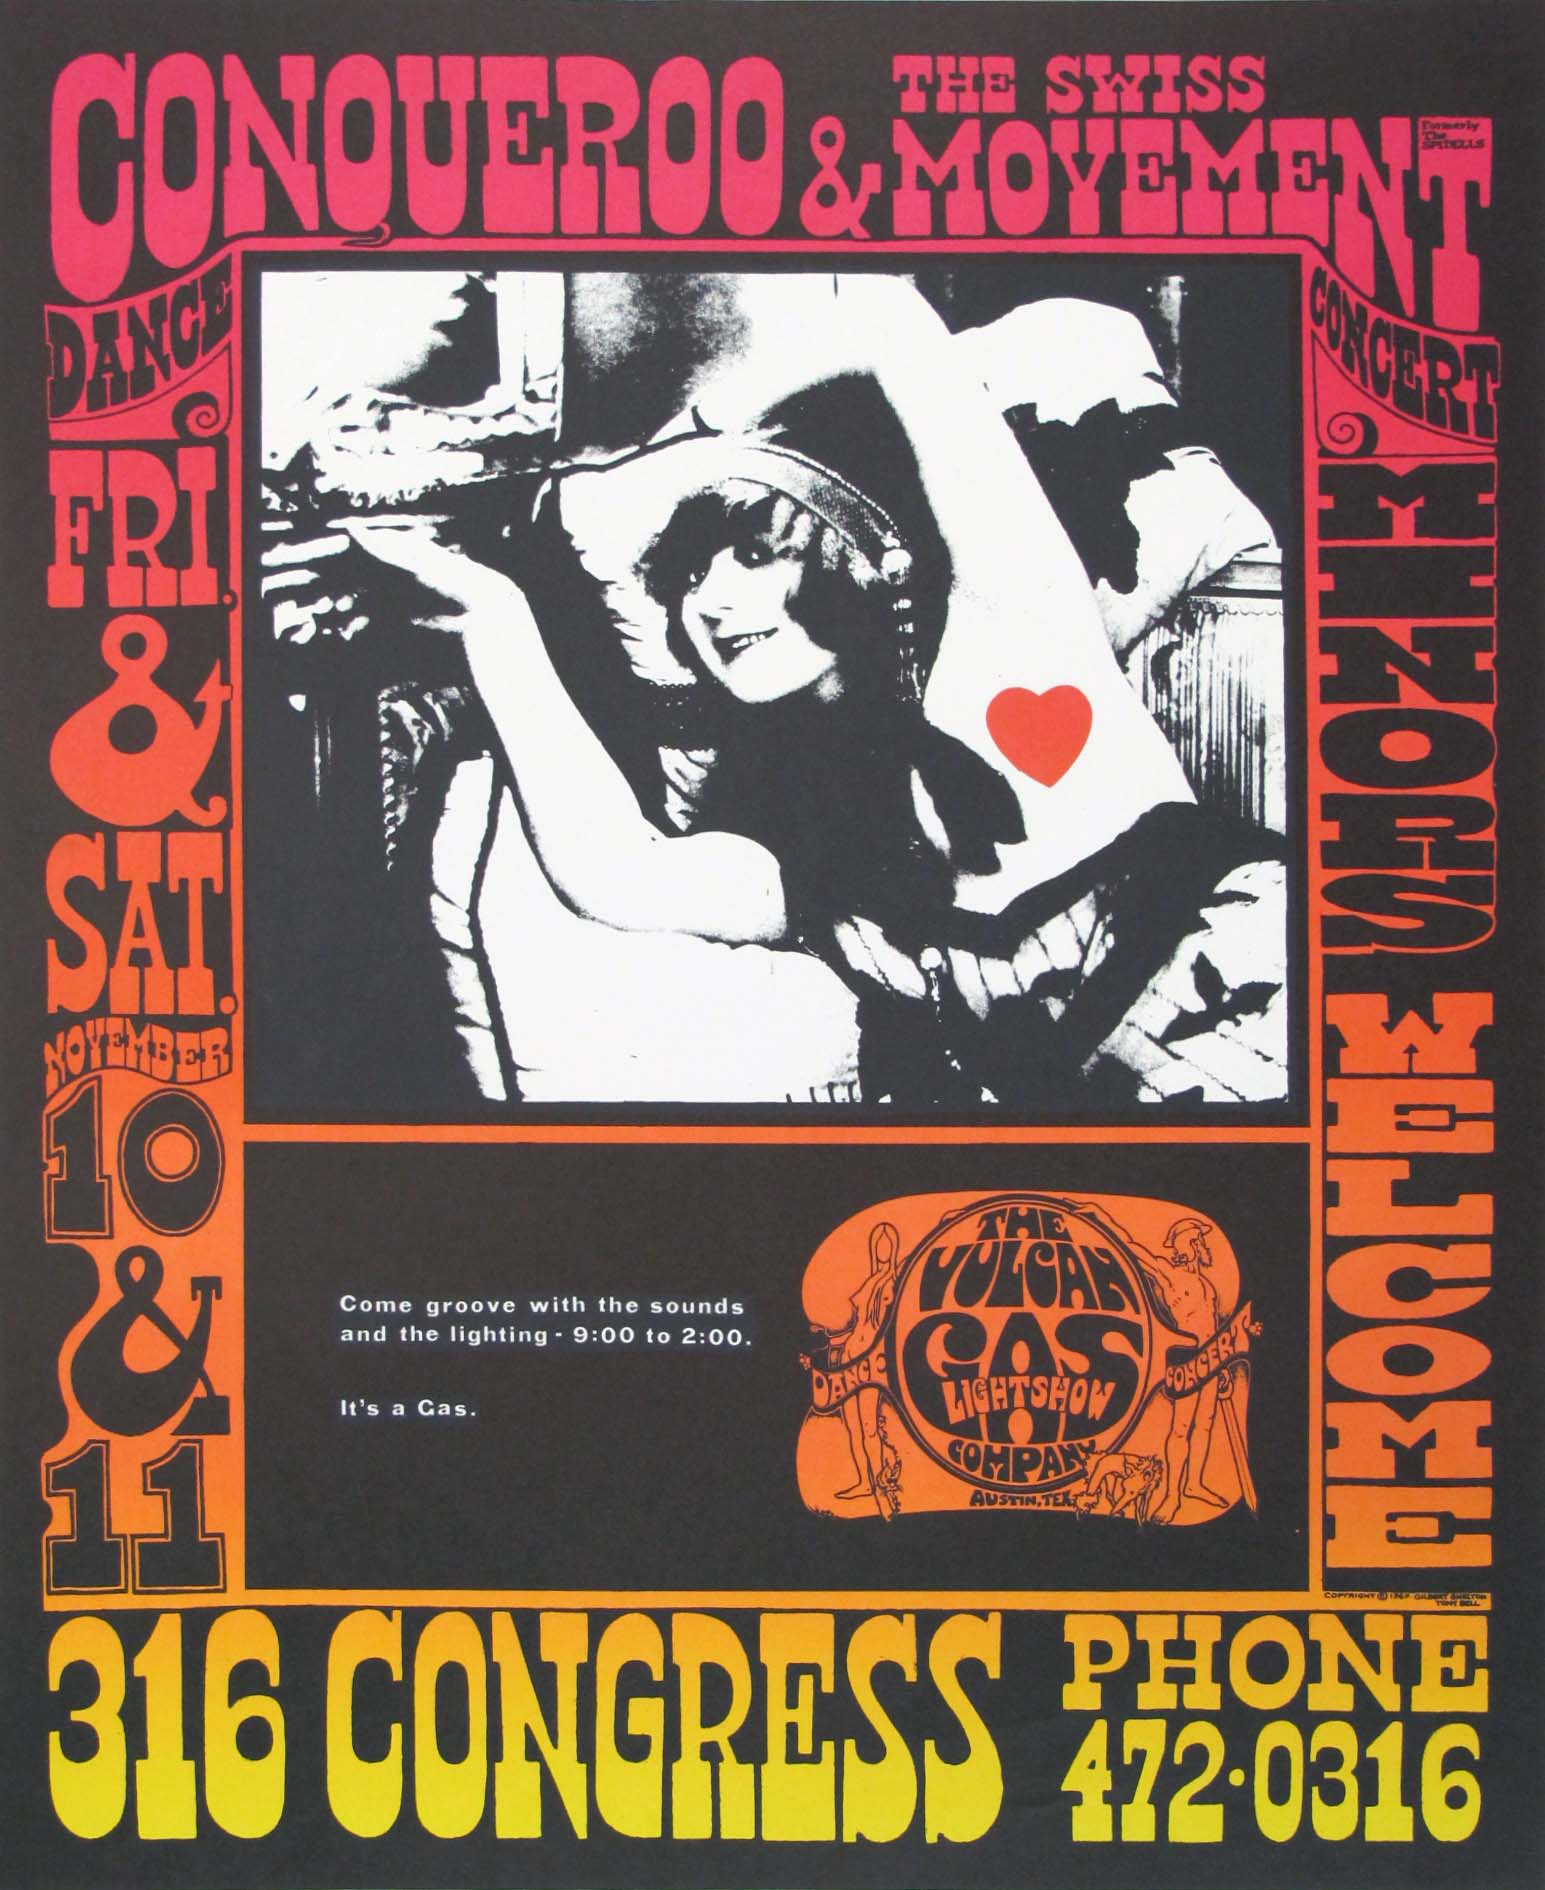 Conqueroo & The Swiss Movement Original Texas Concert Poster